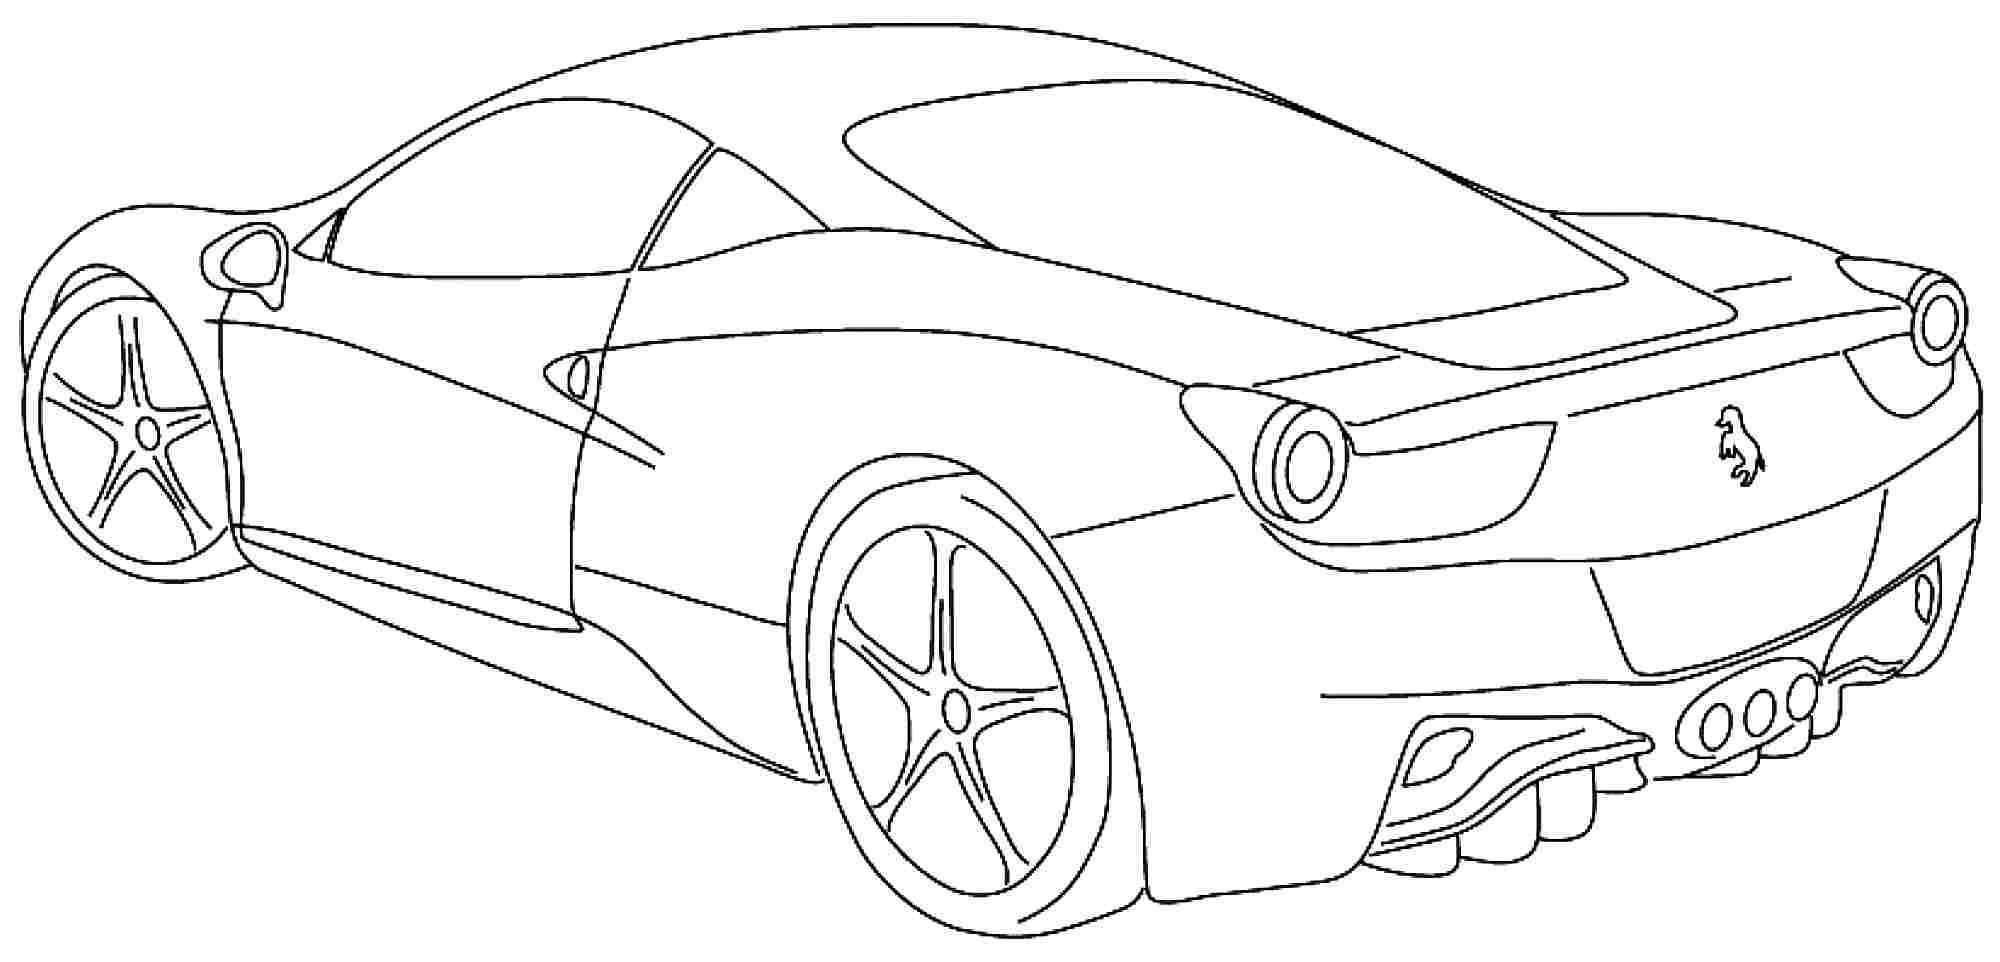 Car Coloring Sheets For Boys  Sports Cars Coloring Pages For Boys – Color Bros